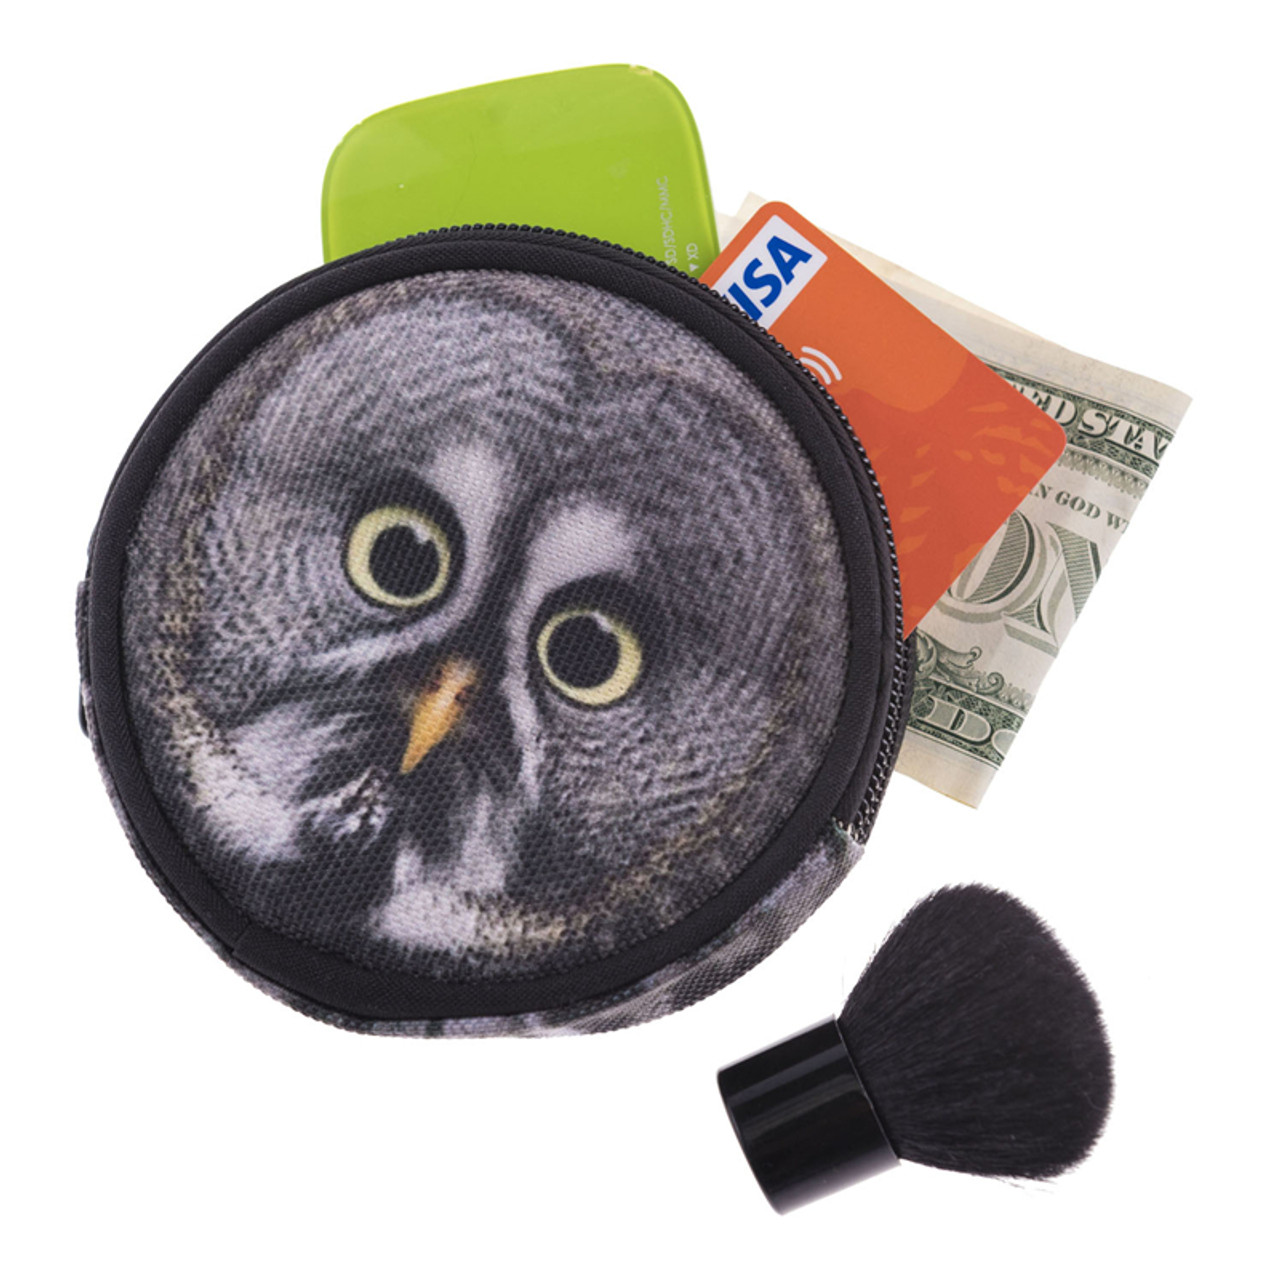 Gray Owl Round Graphic Print Coin Purse - 18 Styles next to a kabuki brush with cash and cards sticking out